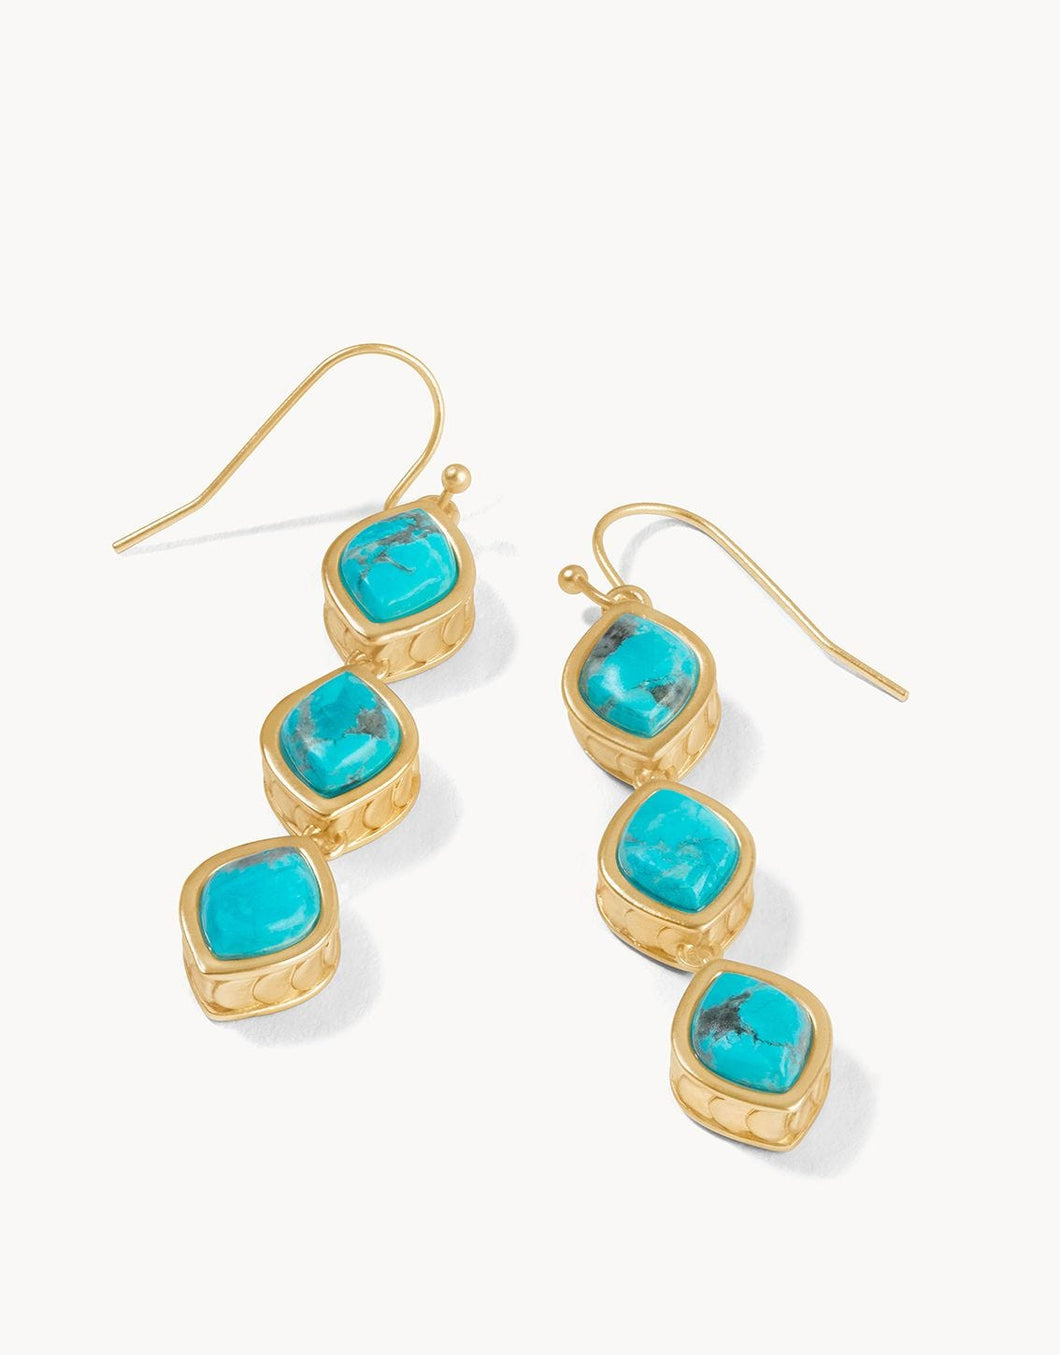 SPARTINA 449 - NAIA LINEAR DROP EARRINGS